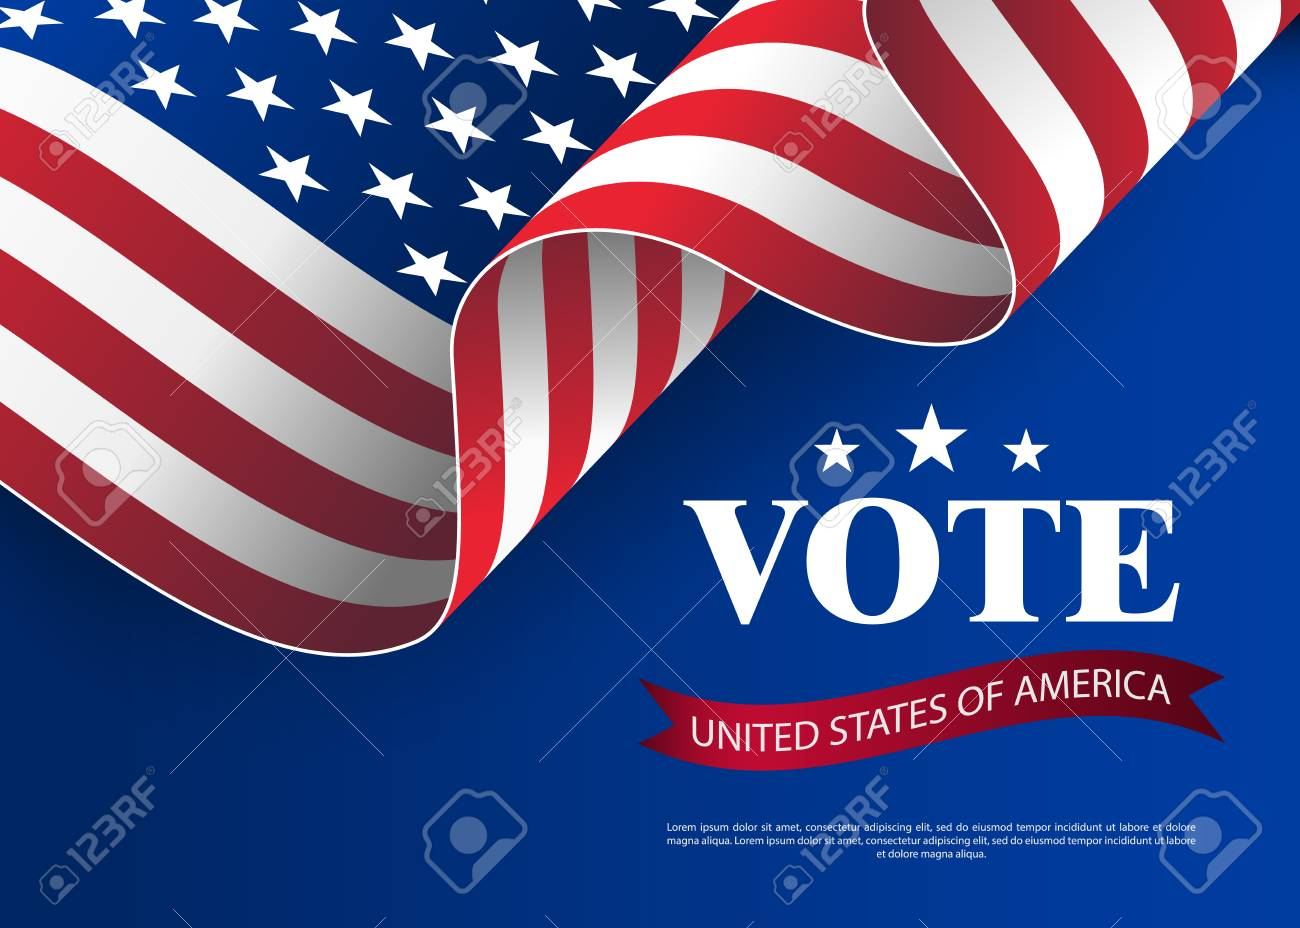 Elections to US Senate in 2018. Template for US elections. Presidential election banner background. Presidential vote banner background. USA voting concept vector illustration. - 109882705